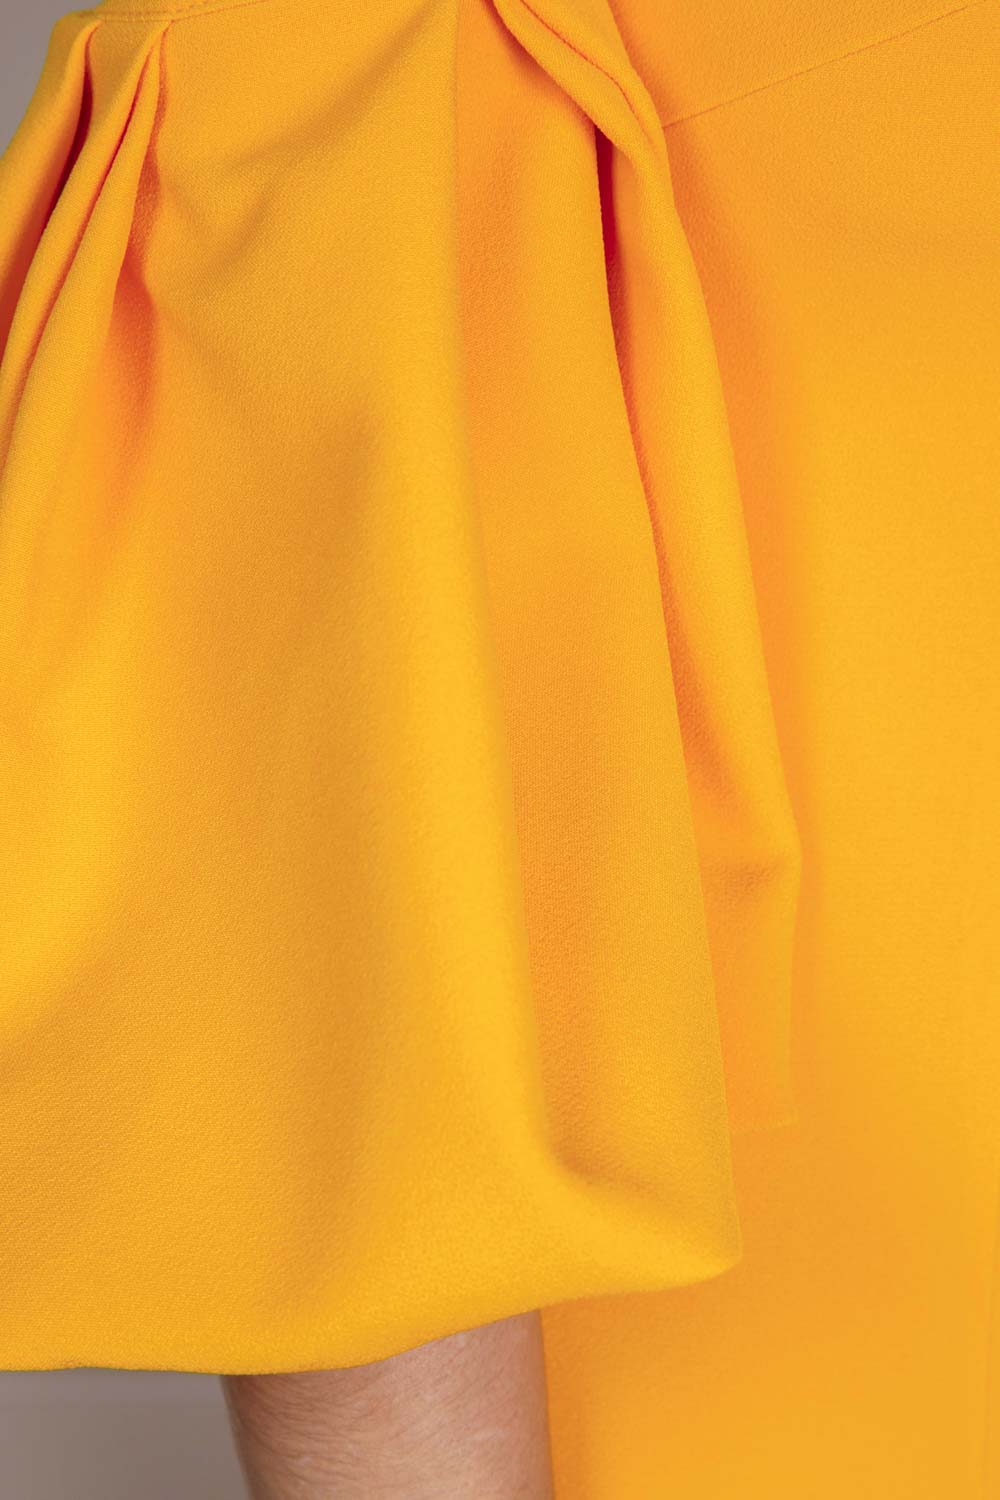 Floor-length gown in Marigold Yellow stretch crepe